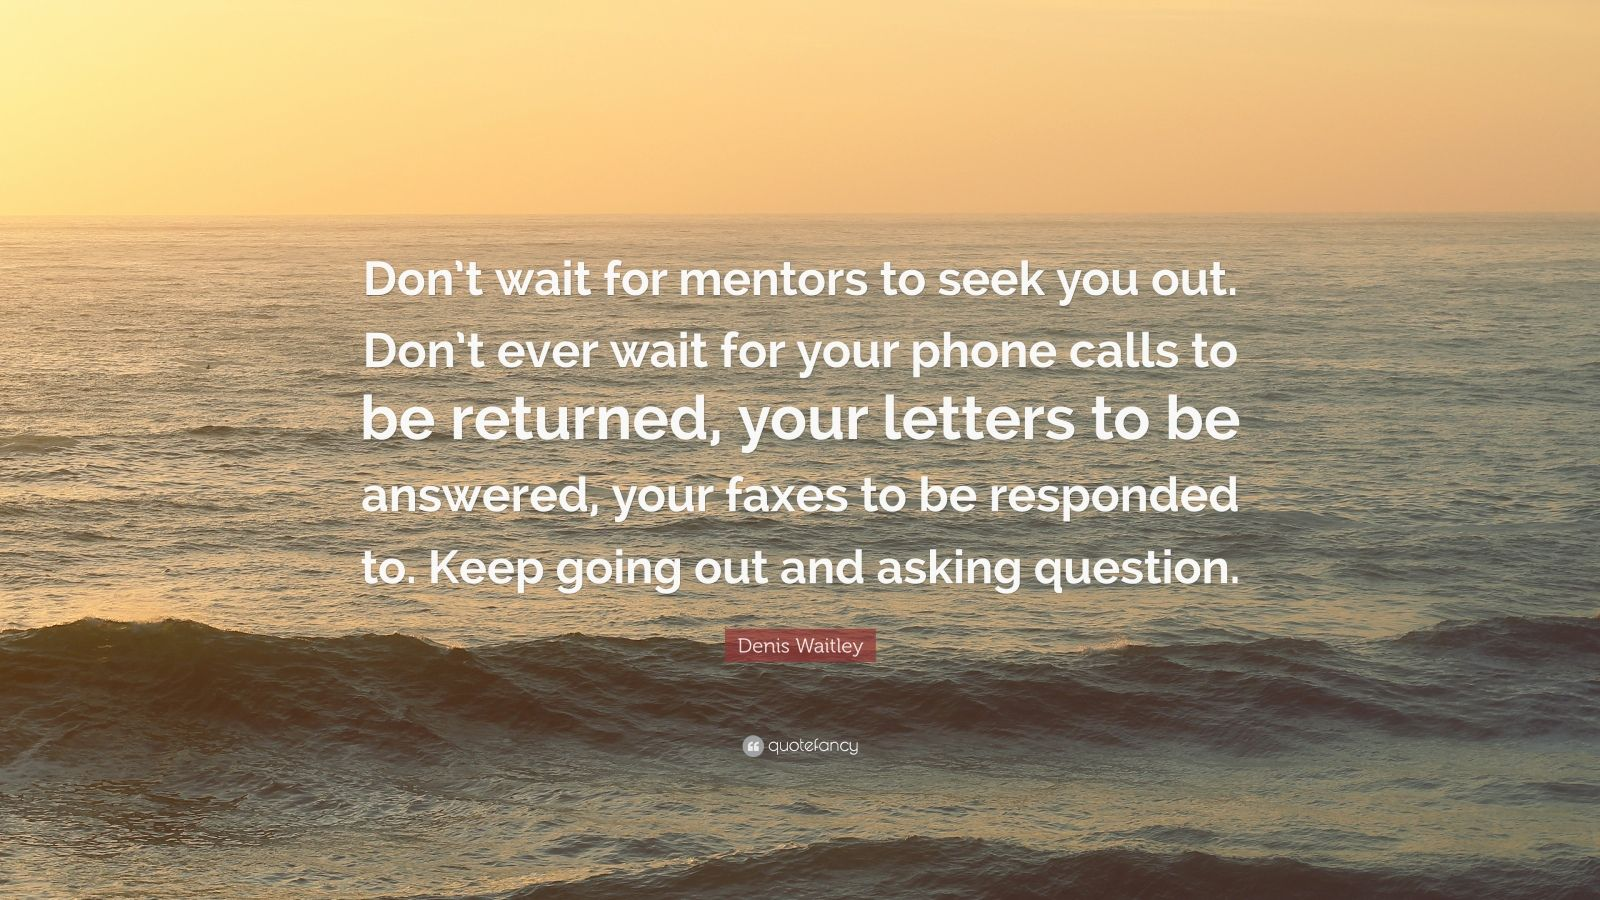 """Denis Waitley Quote: """"Don't wait for mentors to seek you out. Don't ever wait for your phone calls to be returned, your letters to be answered, your faxes to be responded to. Keep going out and asking question."""""""